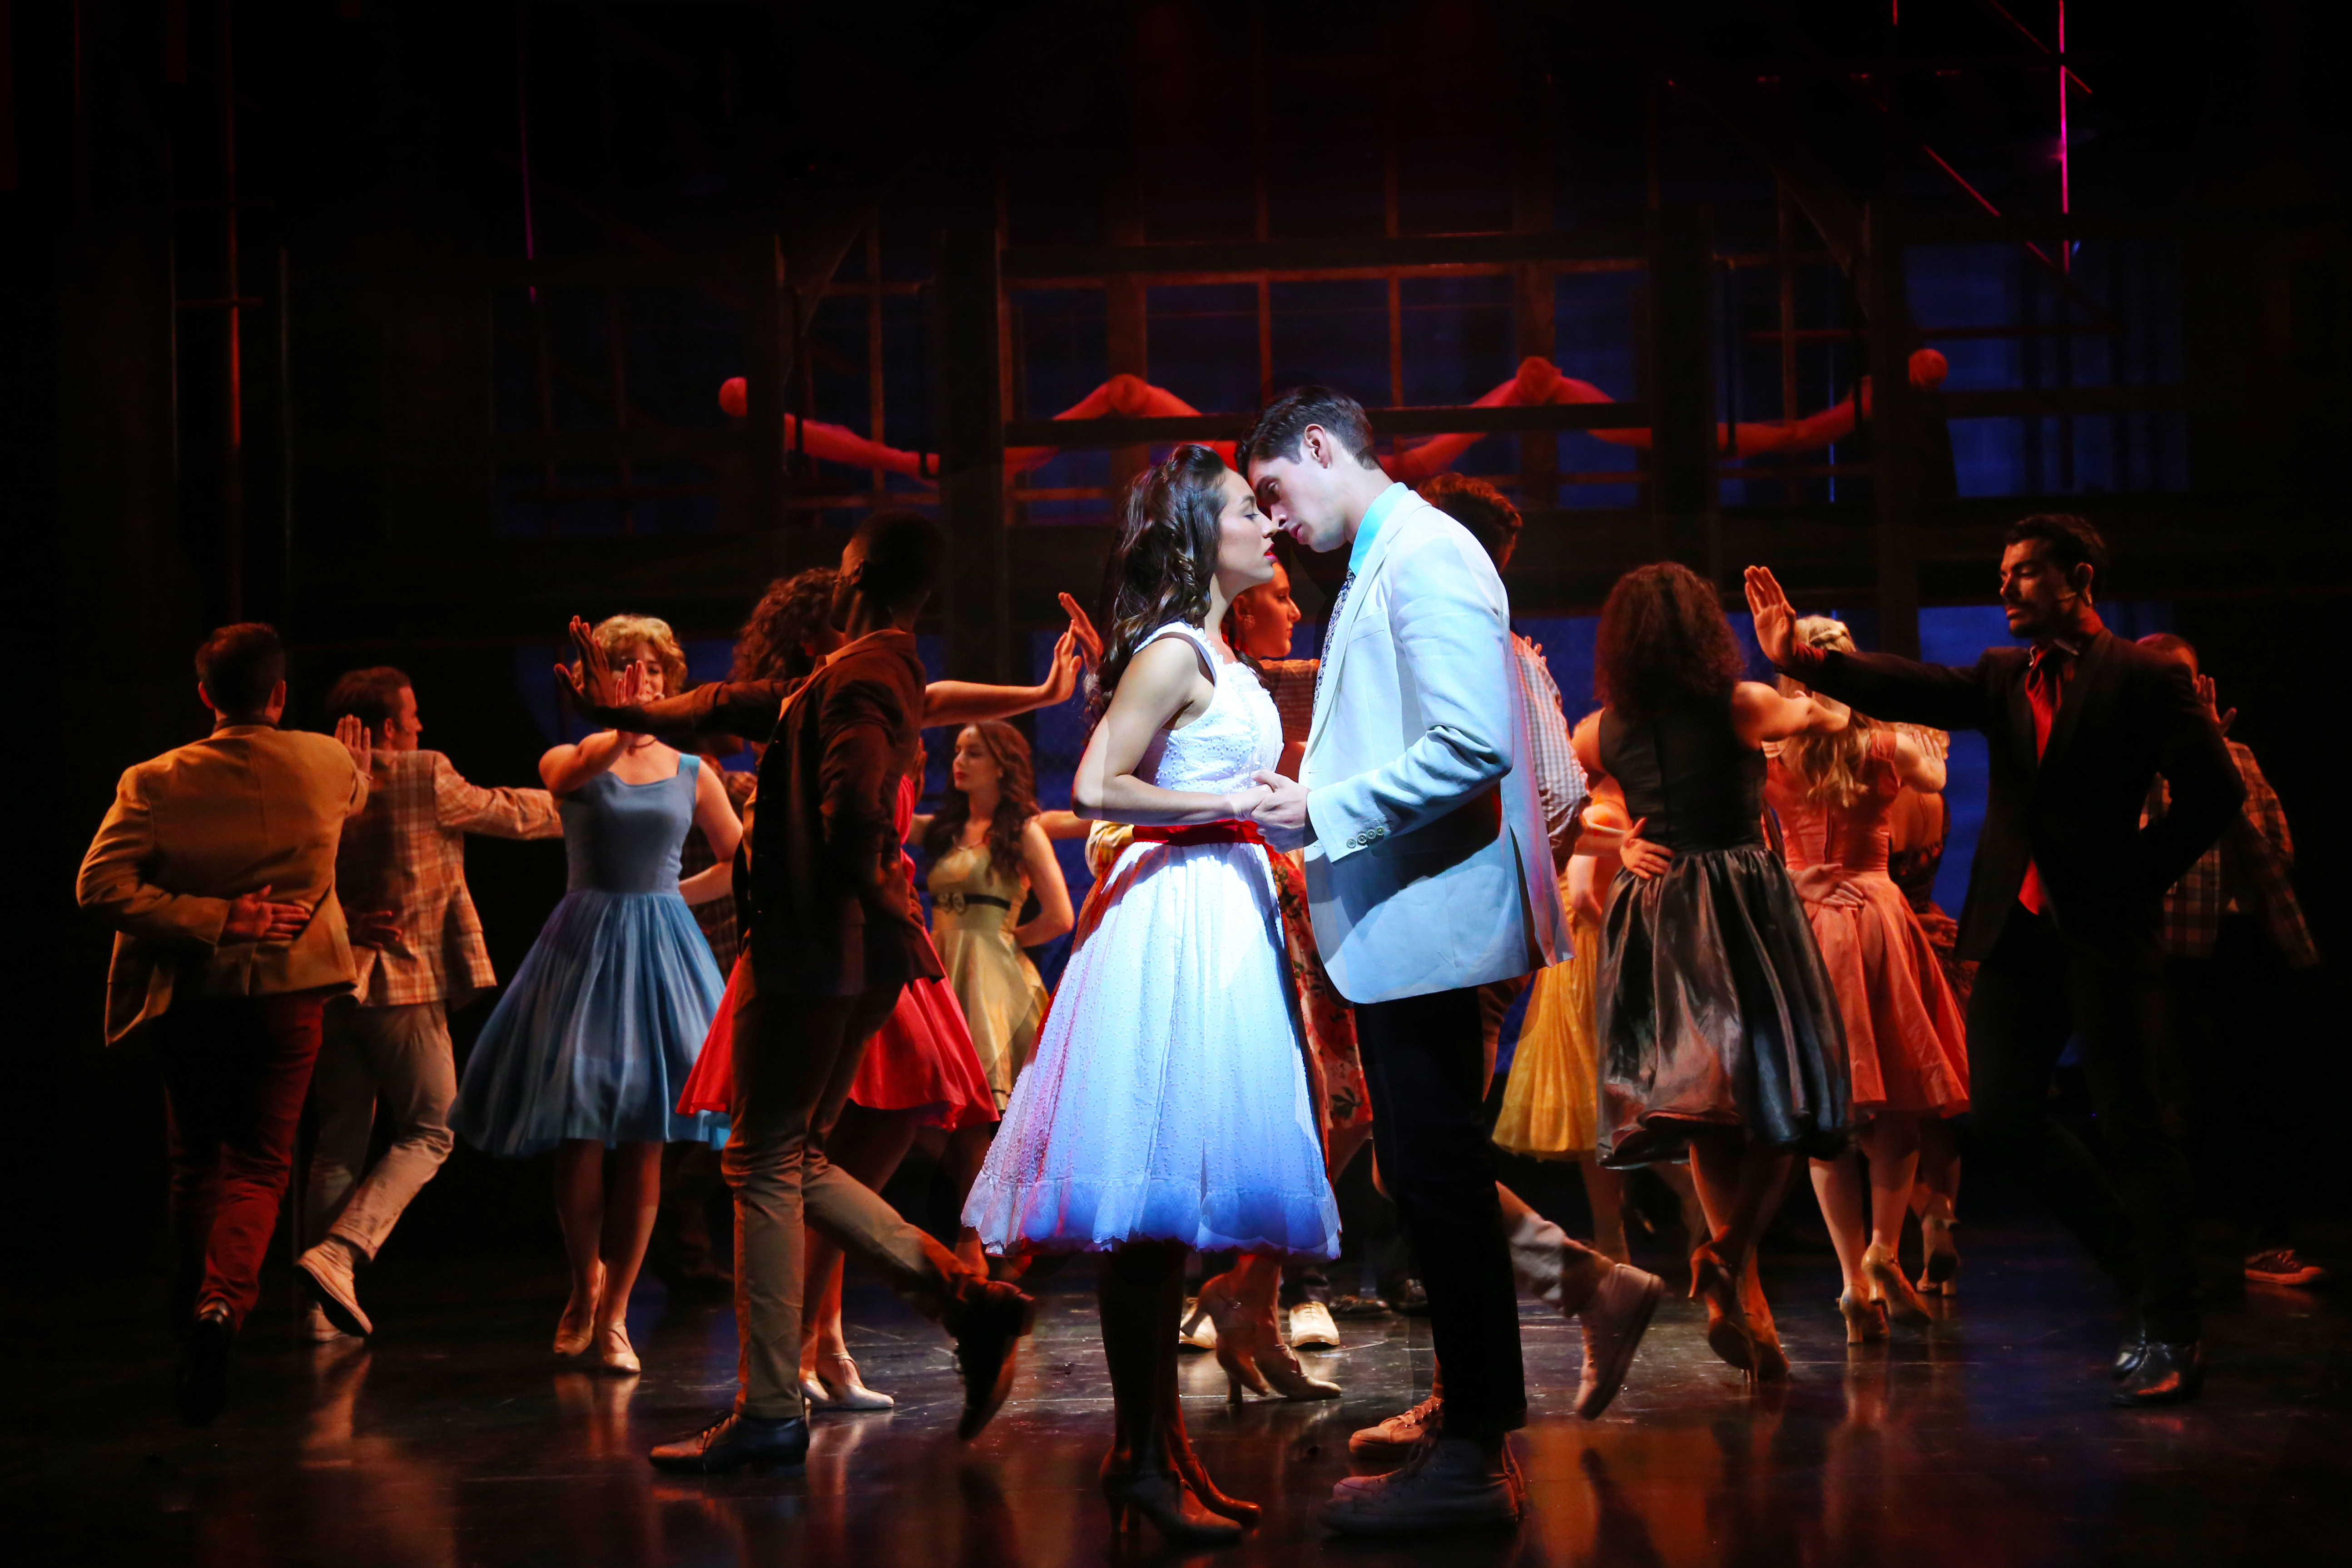 Julia Estrada (Maria) and Luke Hamilton (Tony) in WEST SIDE STORY onstage at Connecticut Repertory Theatre July 7-17, 2016. (Gerry Goodstein for UConn)